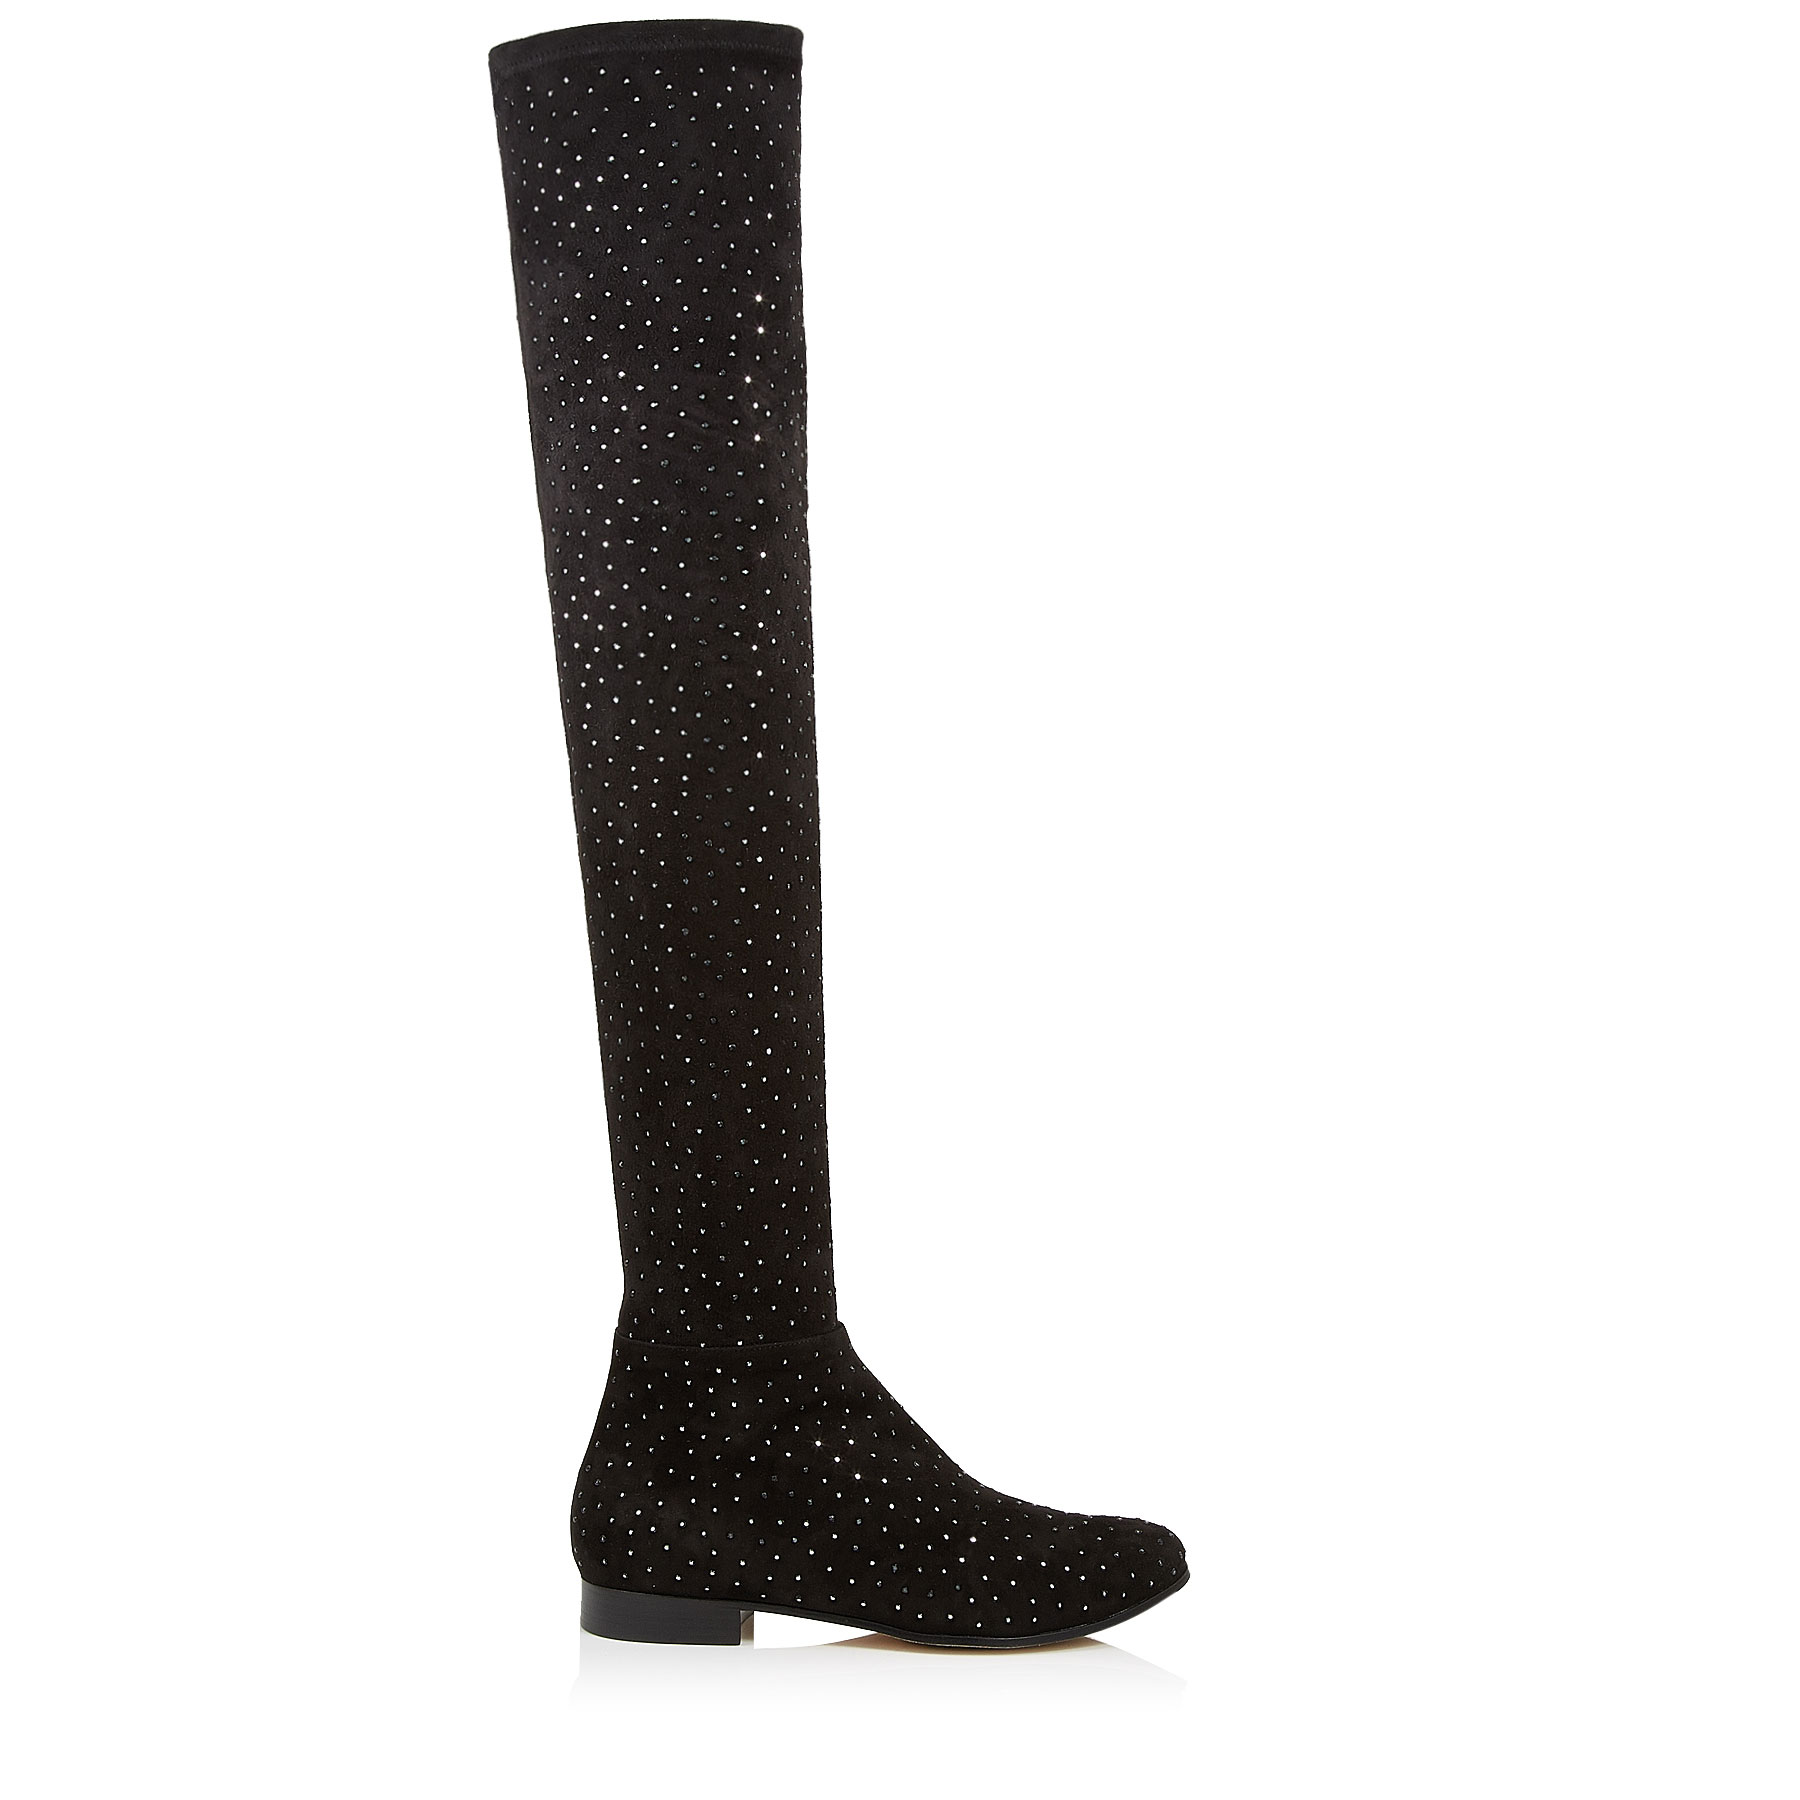 MYREN FLAT Black Strech Suede Over The Knee Boots with Scattered Crystals by Jimmy Choo